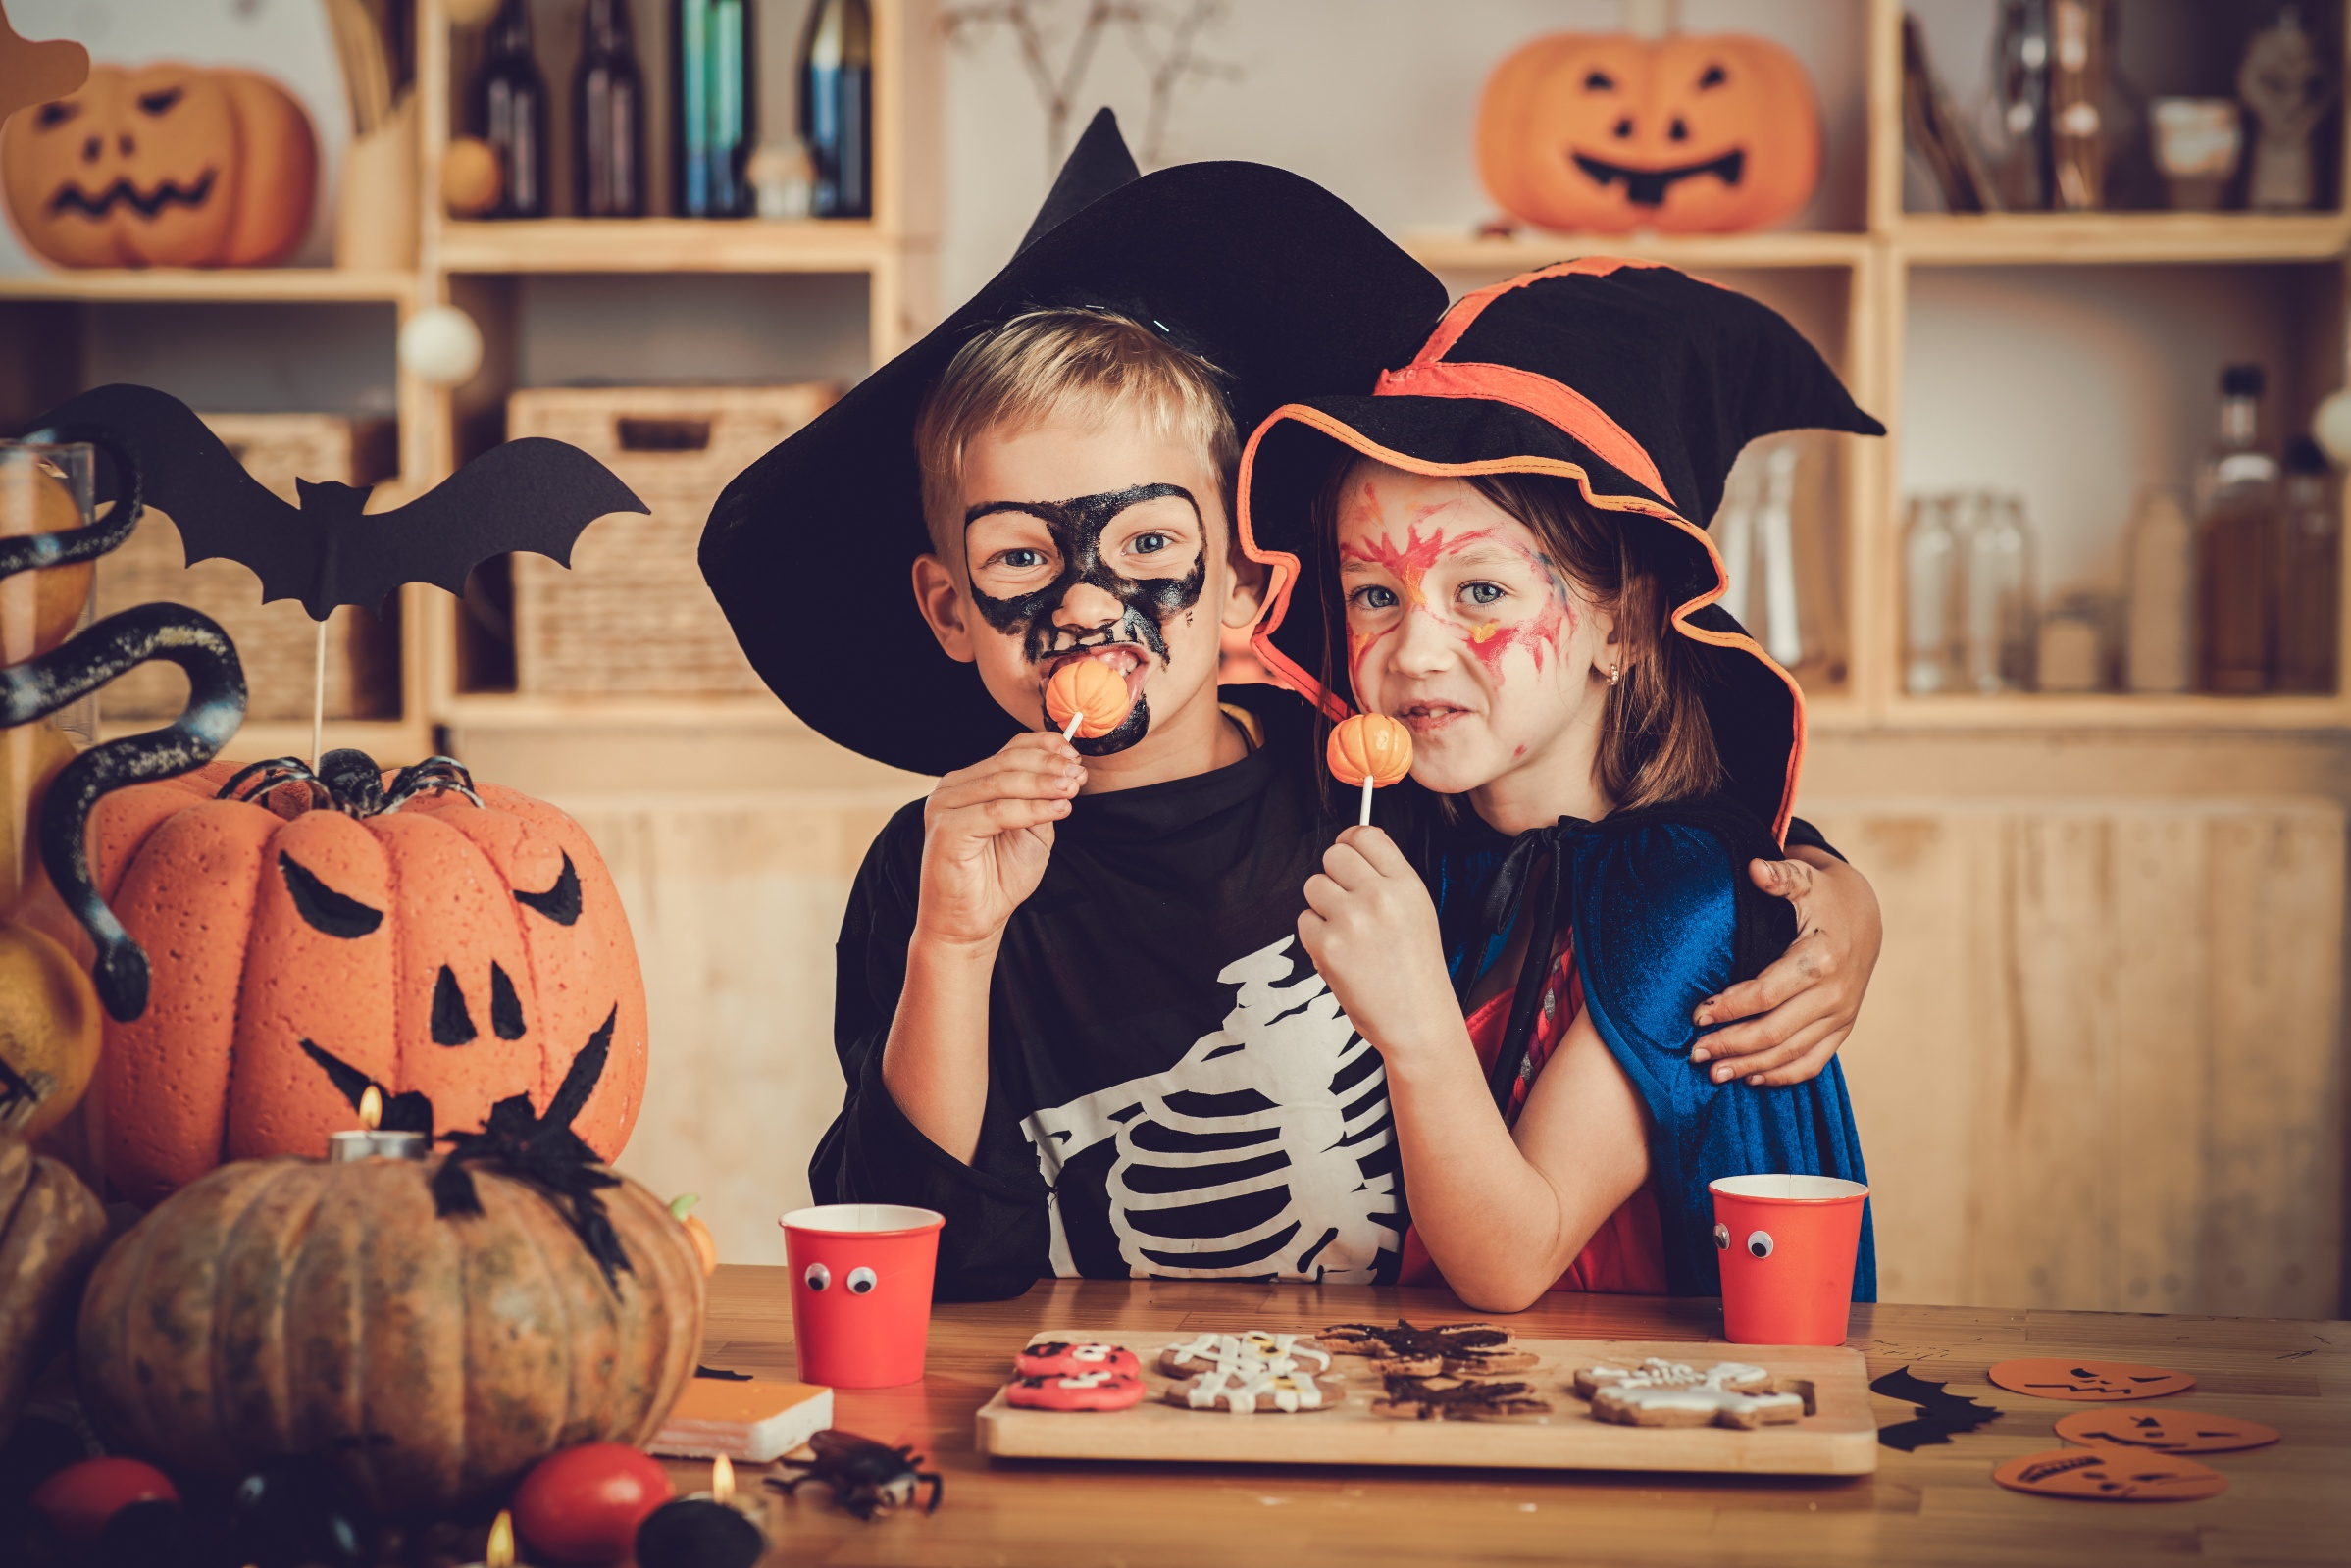 halloween: what you didn't know | kids live safe: a family safety blog